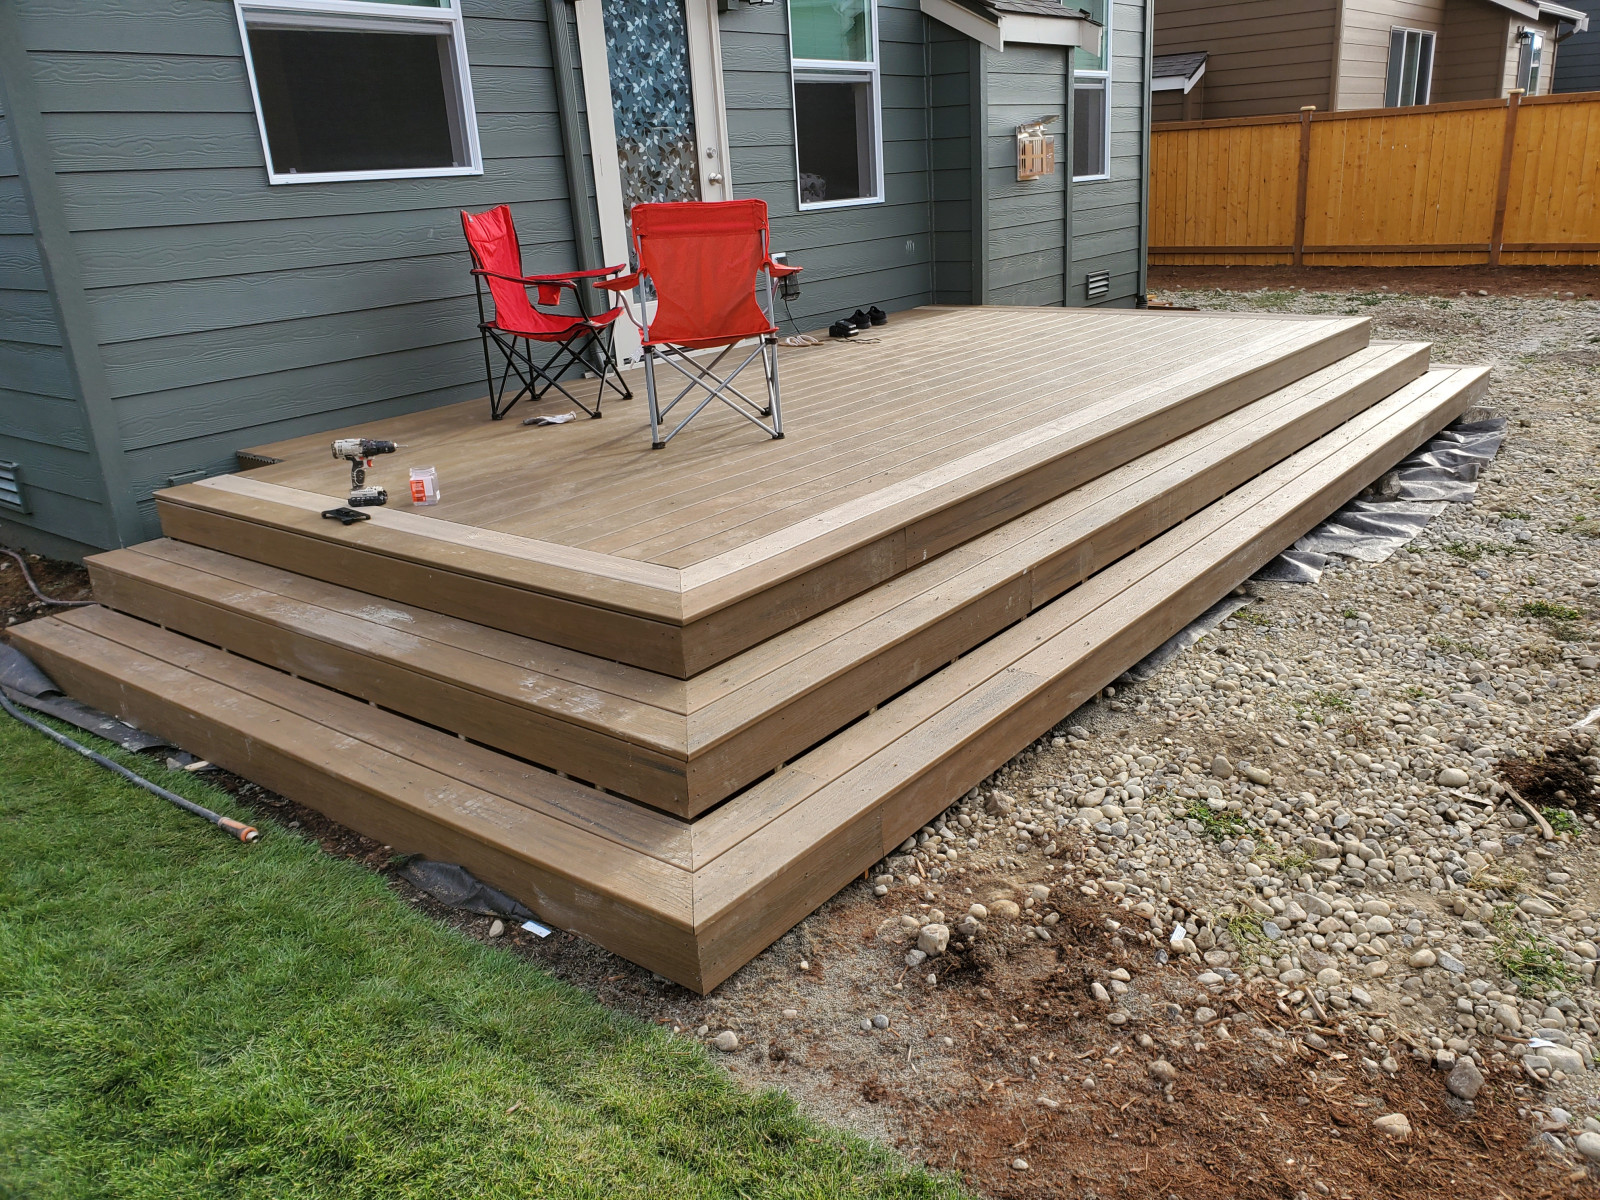 10'x20' trex deck with wrap around steps